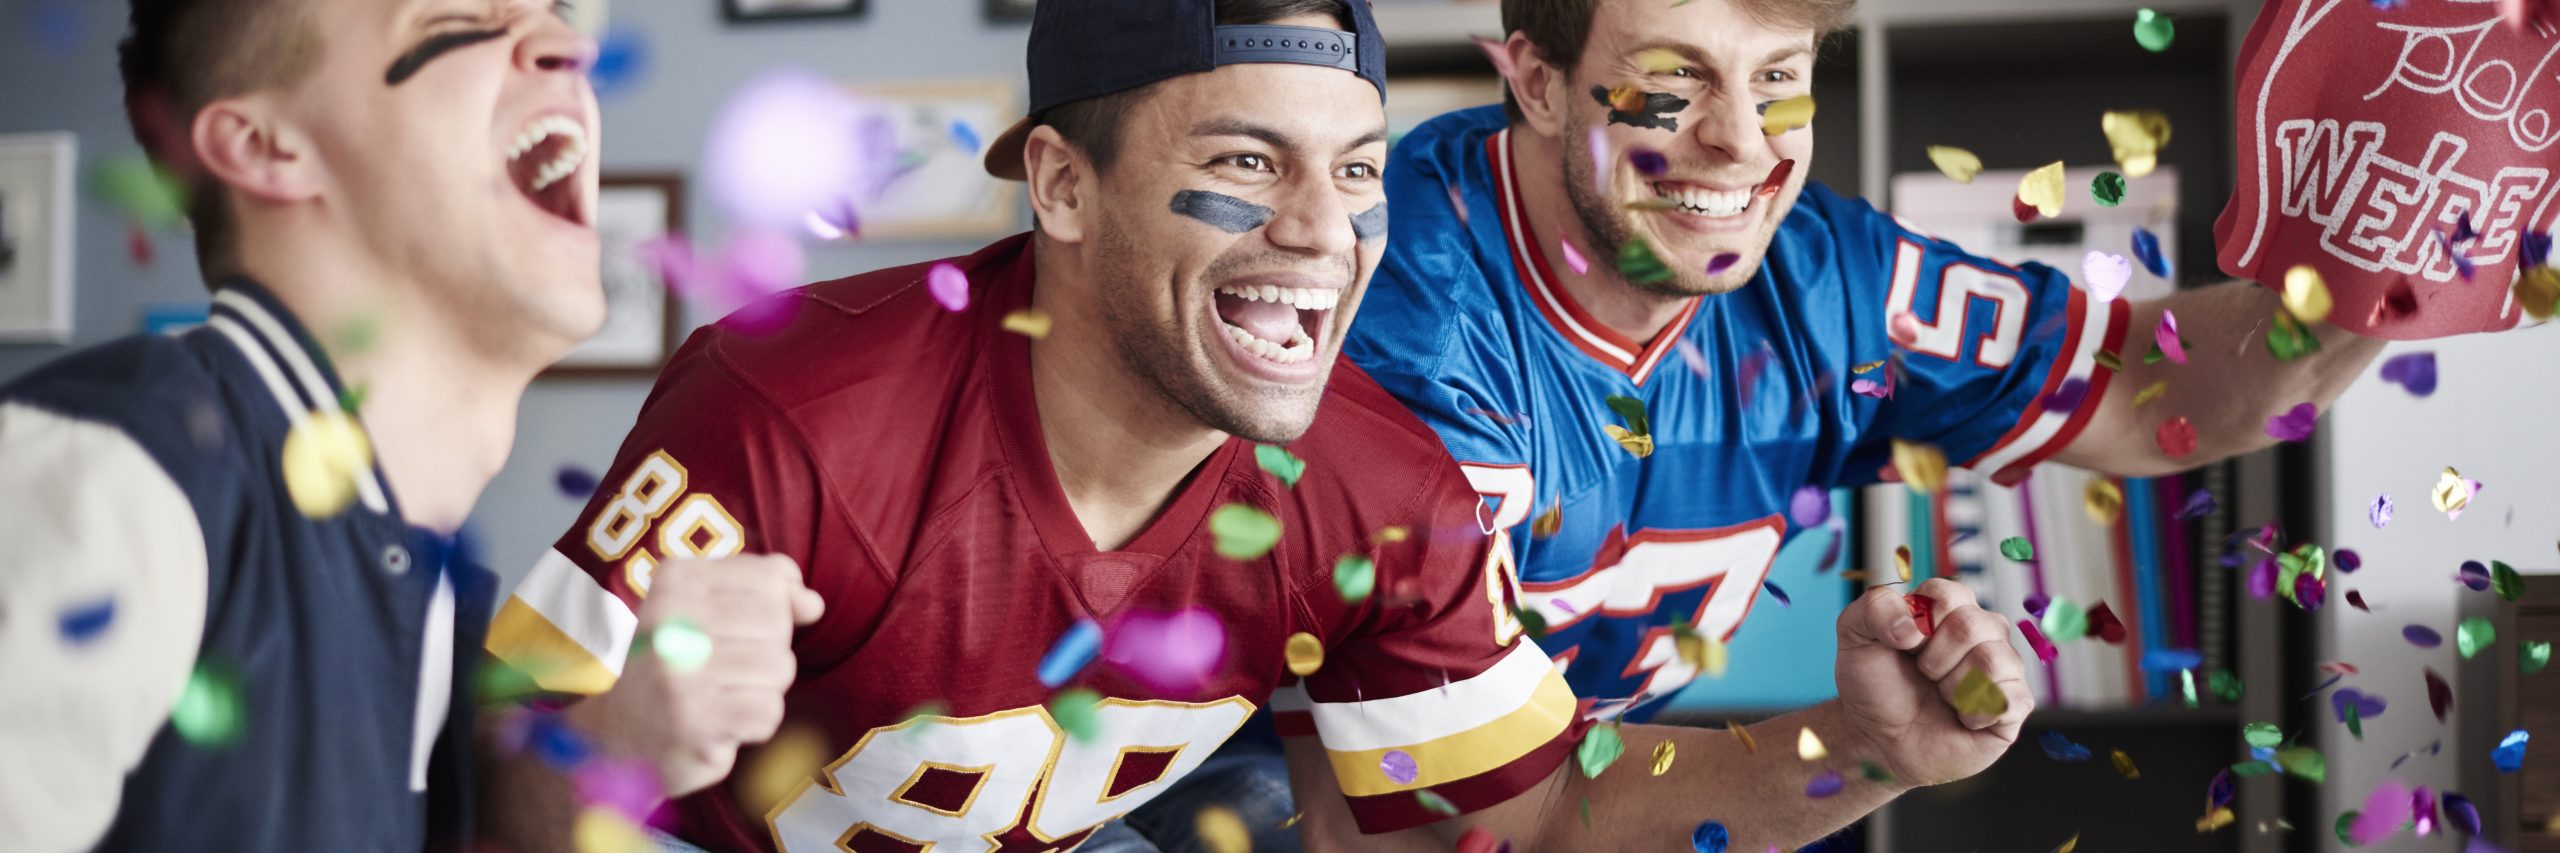 Football fans cheering for the Super Bowl.